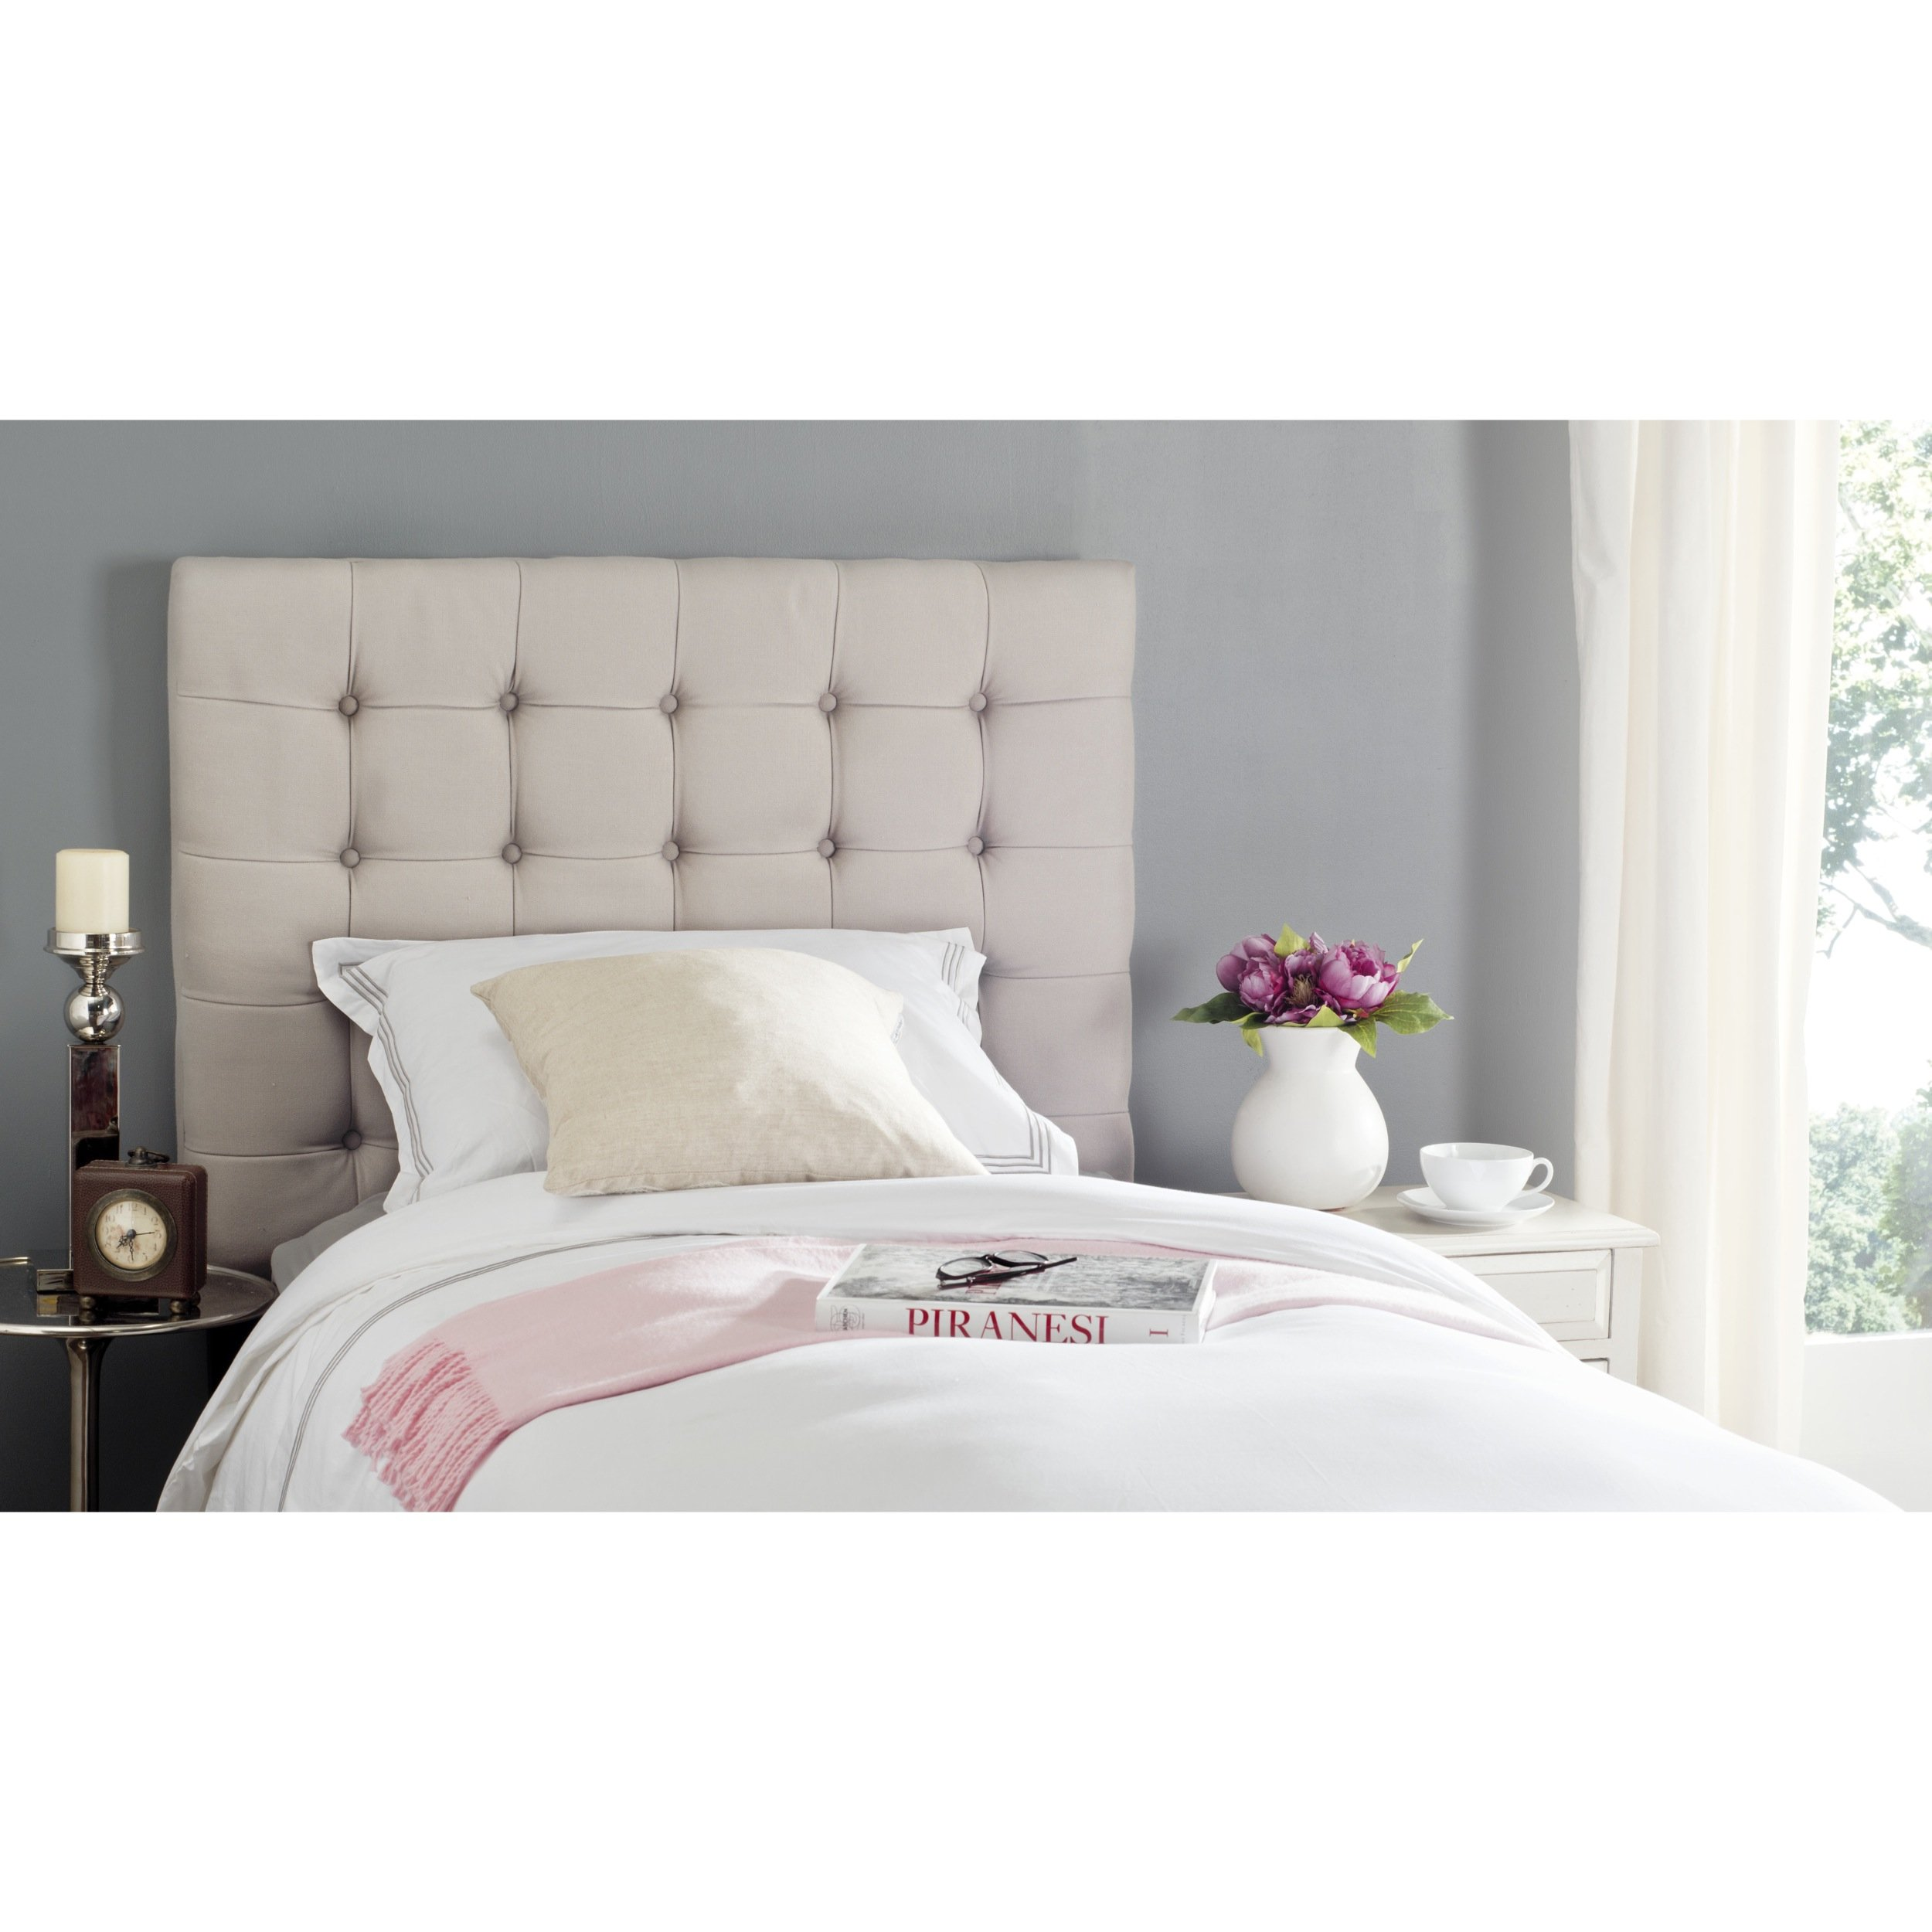 Safavieh Lamar Taupe Linen Upholstered Tufted Headboard (Twin) by Safavieh